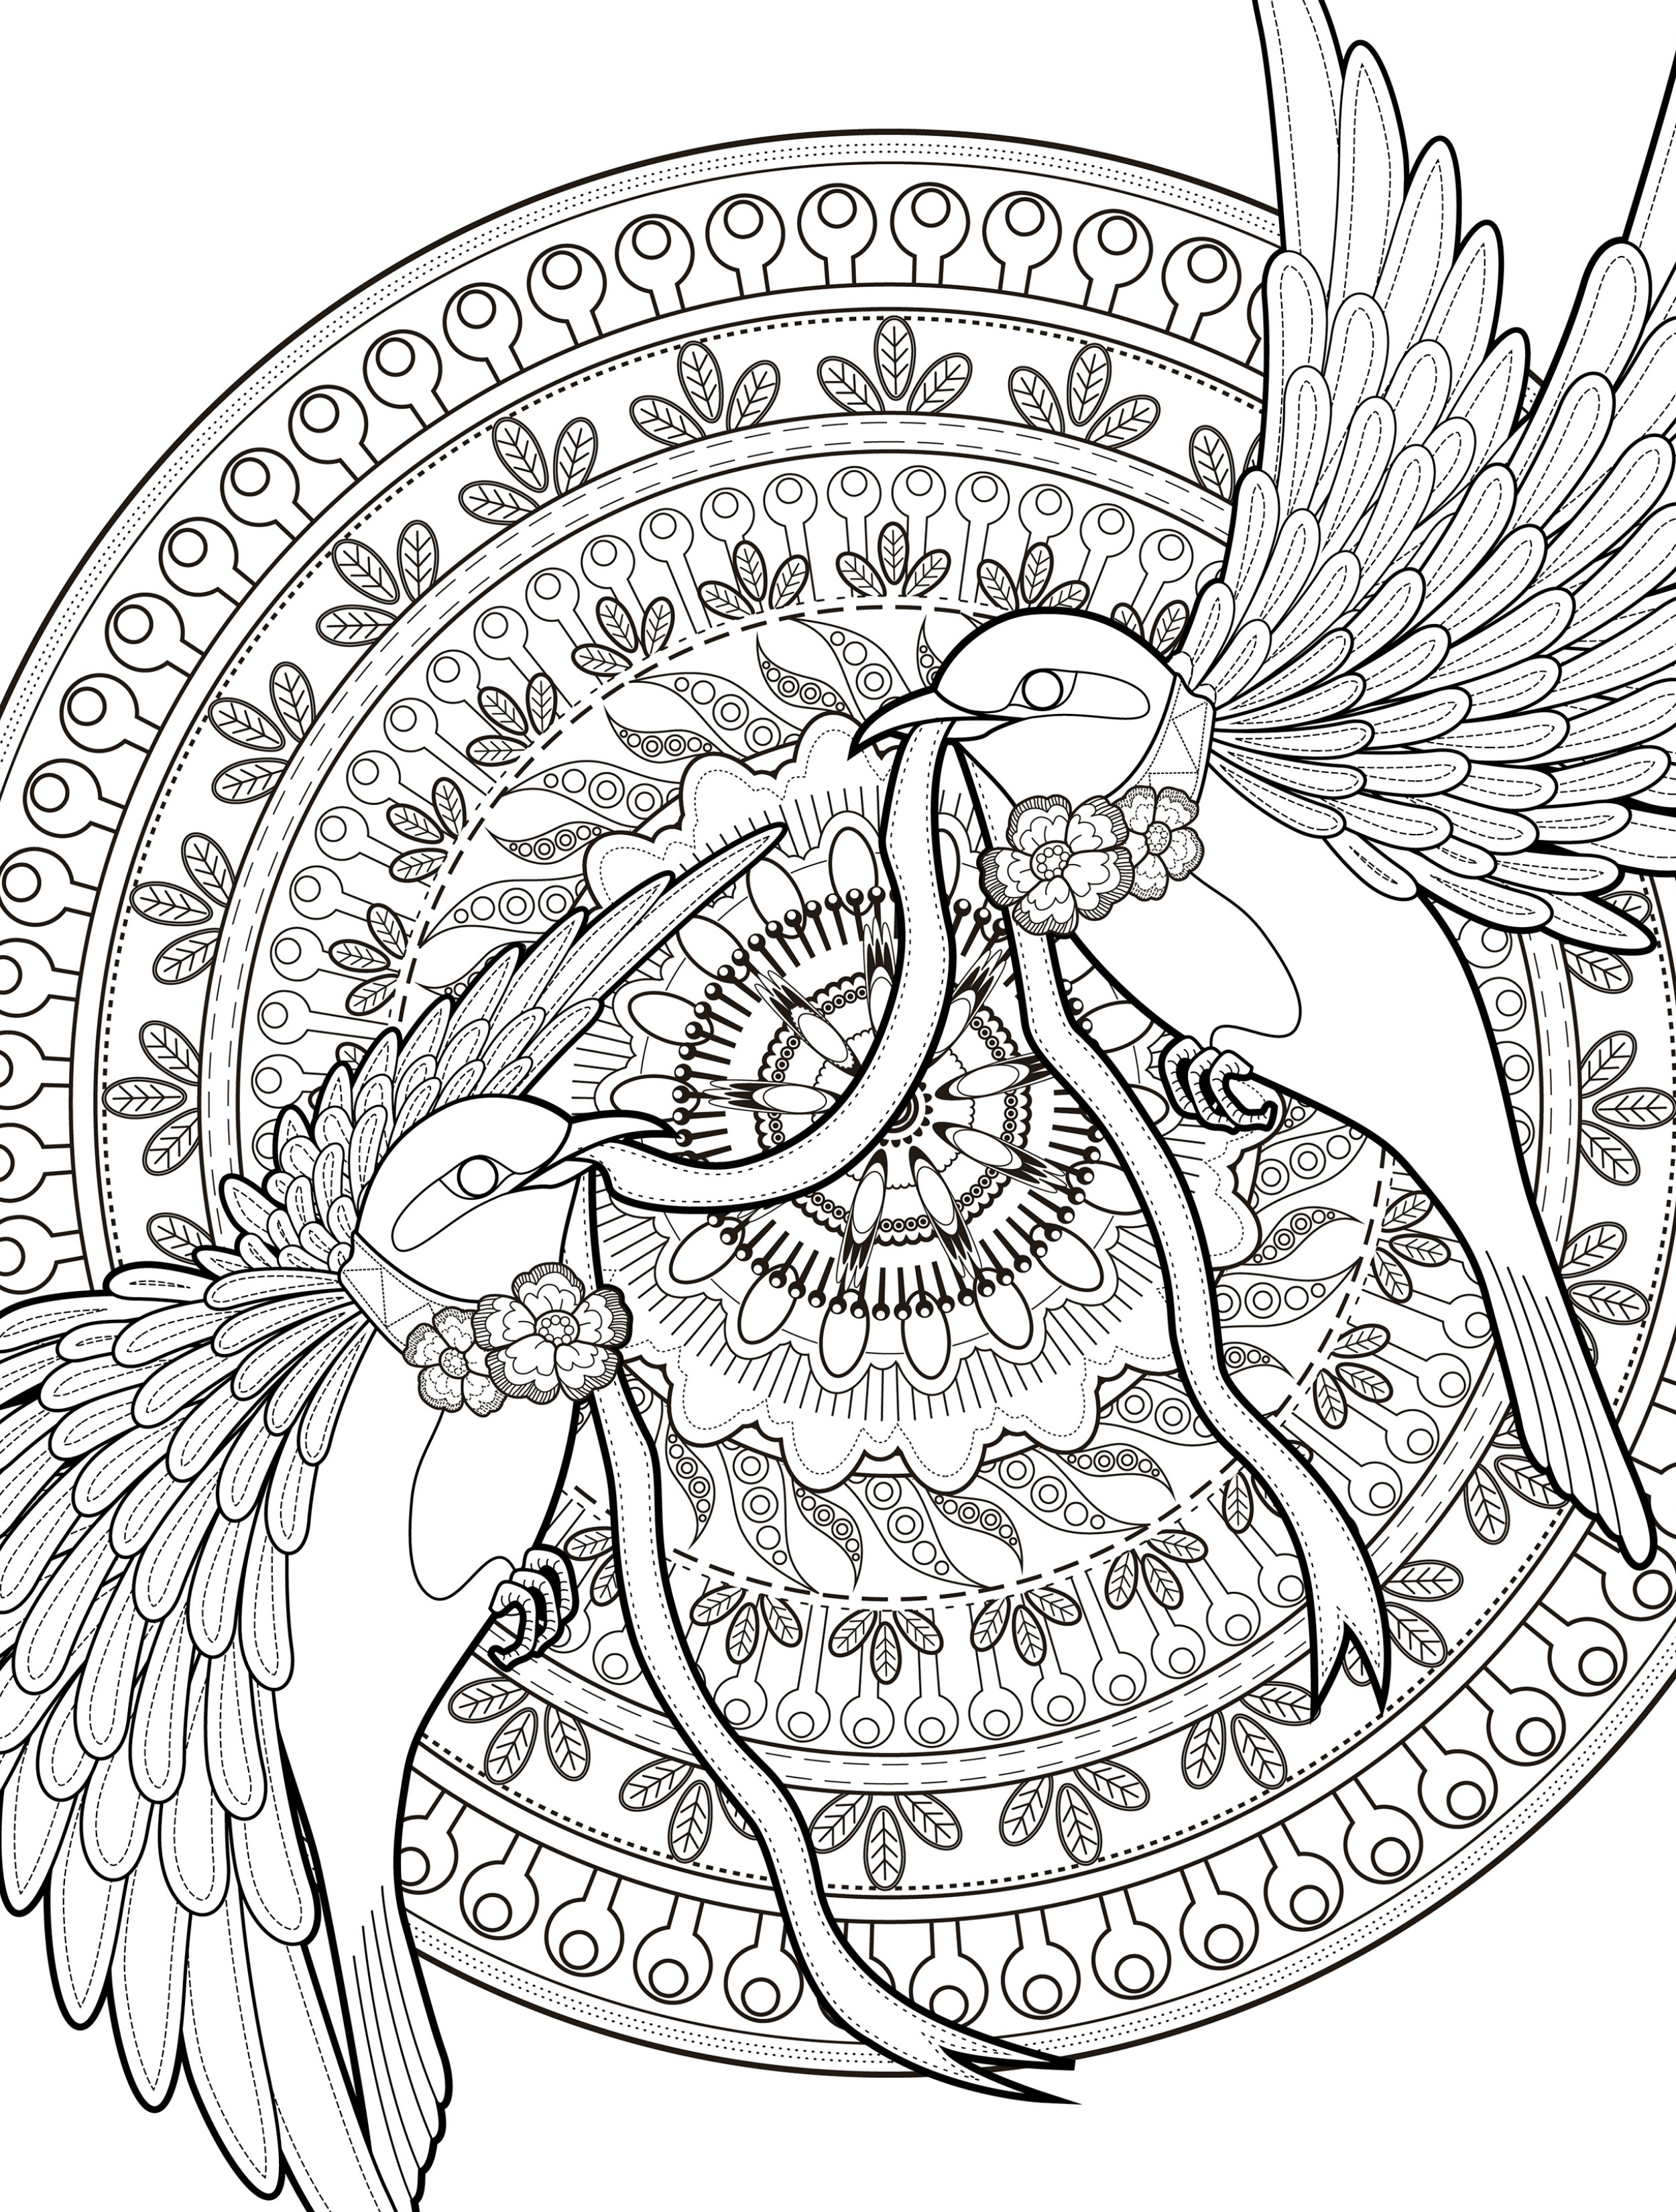 Free Adult Coloring Pages 24 More Free Printable Adult Coloring Pages Page 24 Of 25 Nerdy